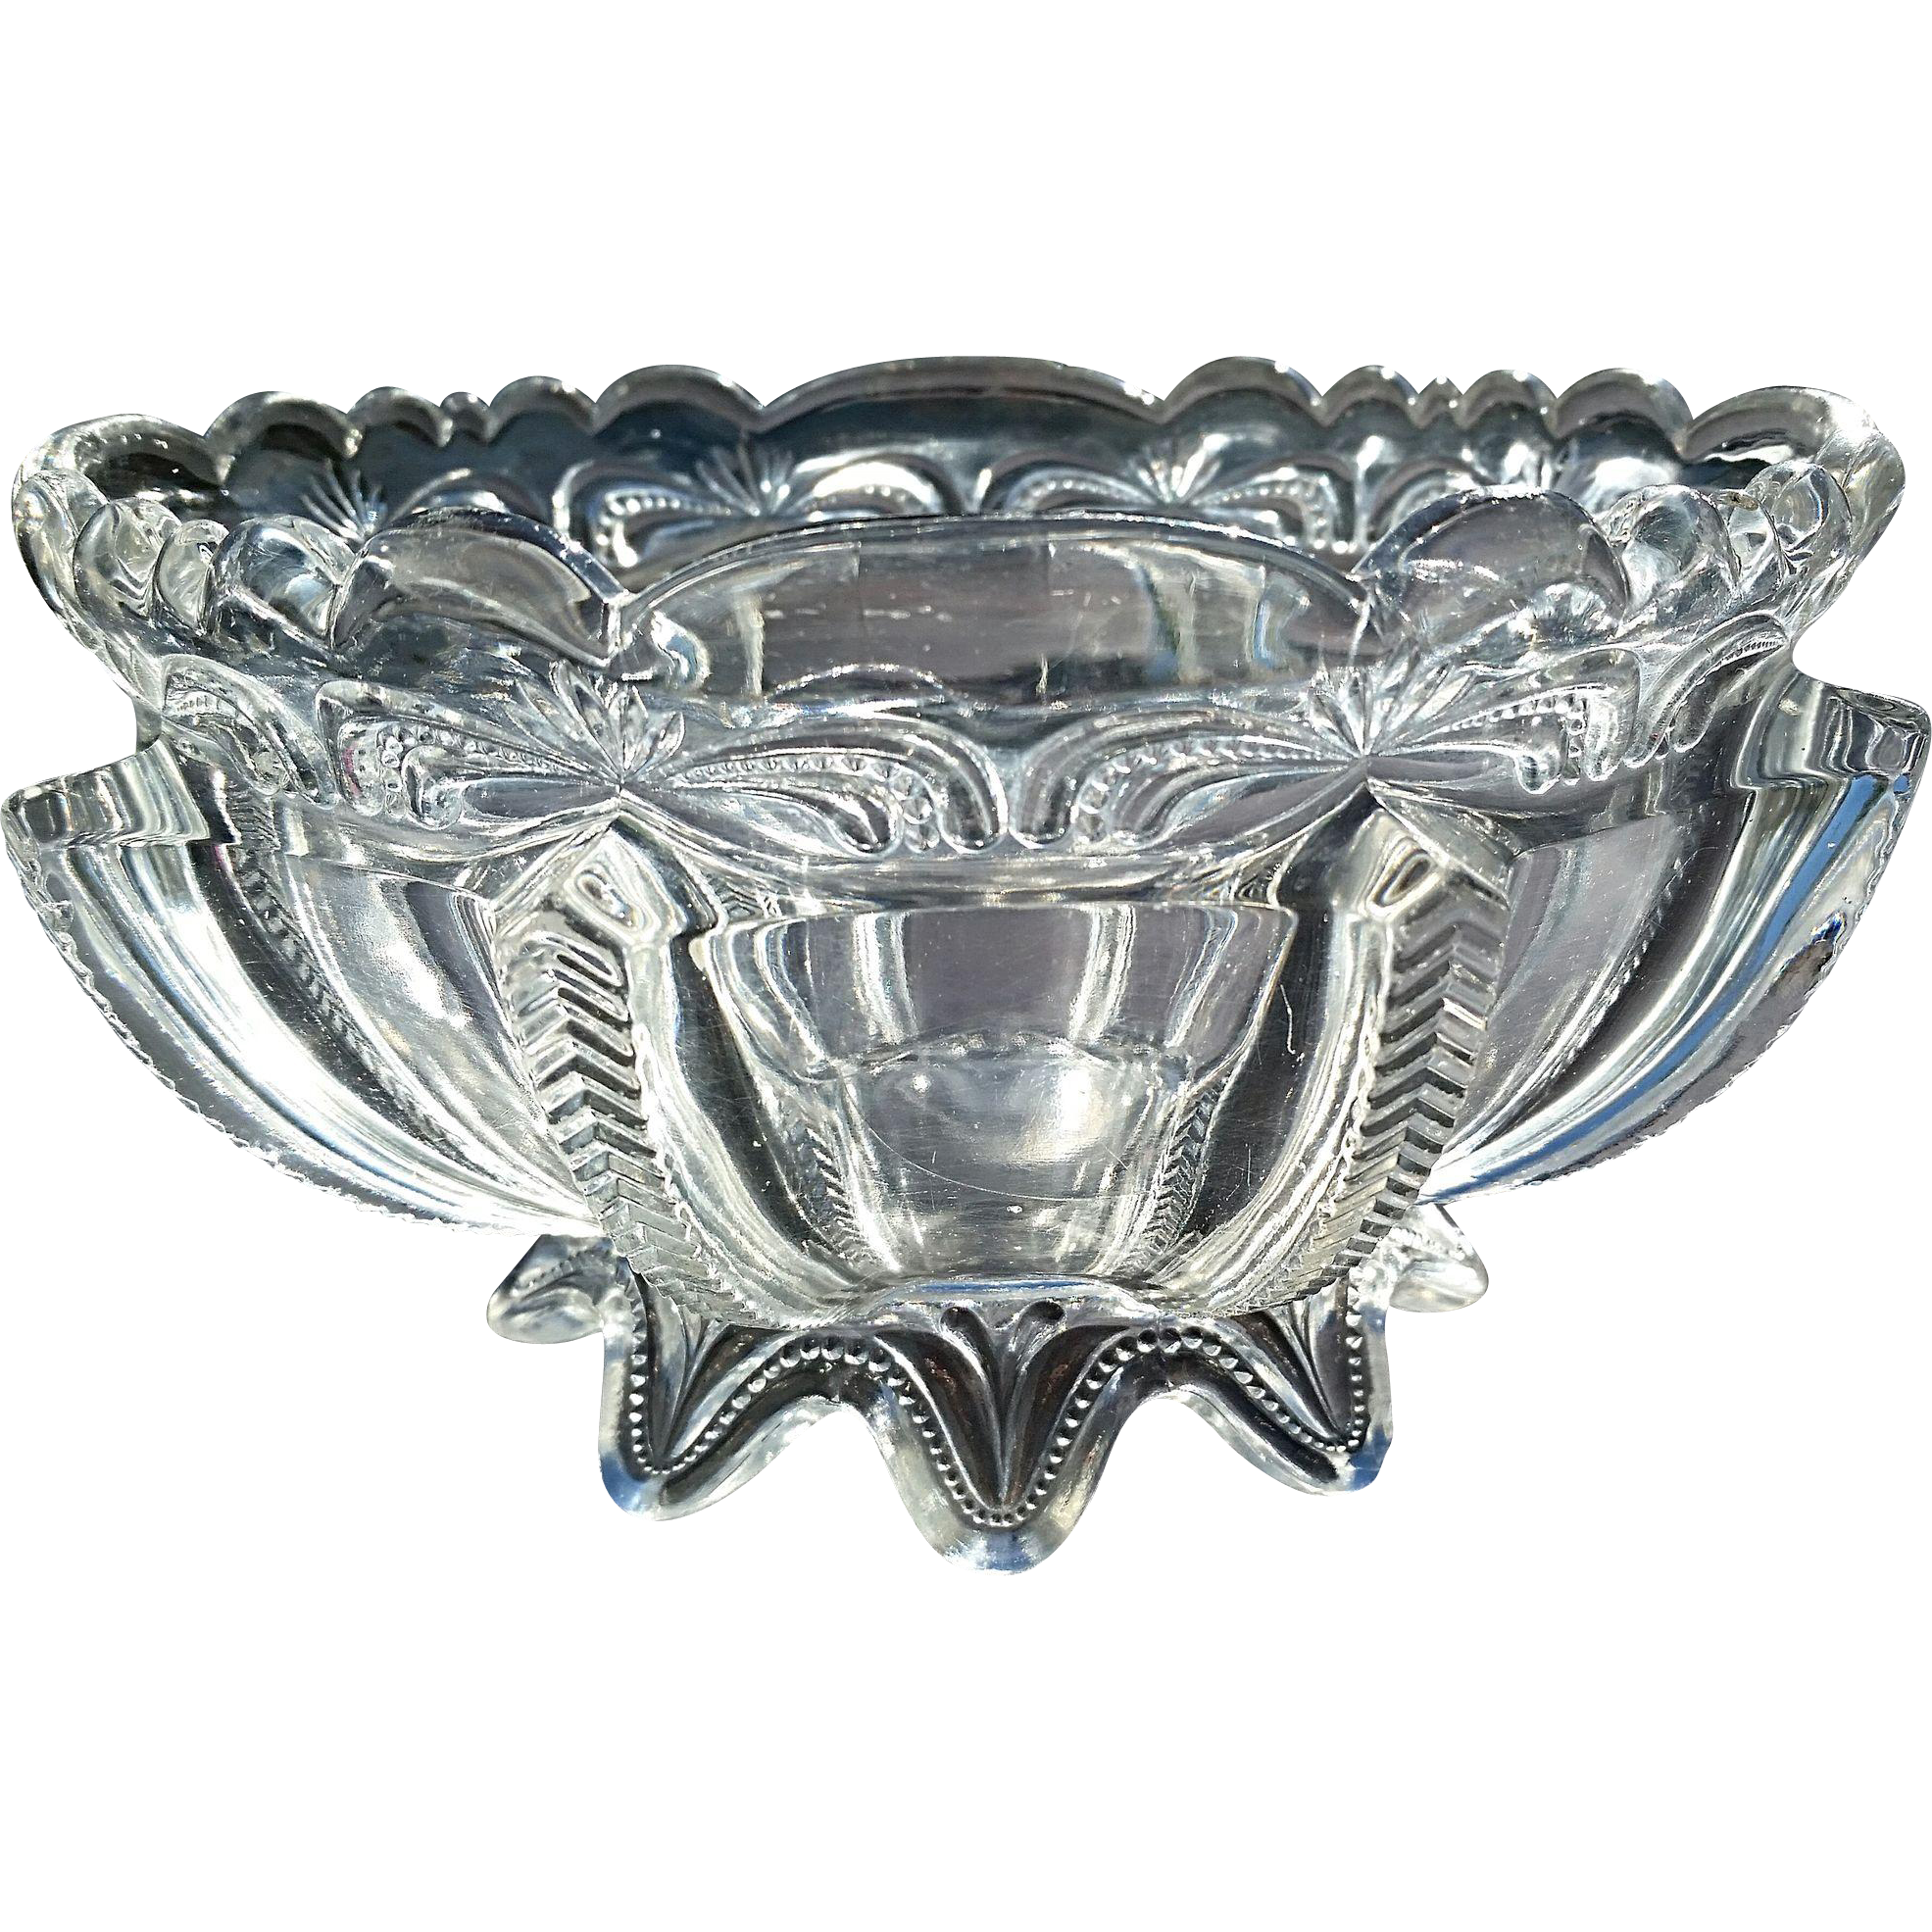 Greentown Glass, 'Herringbone Buttress' clear 7 inch bowl